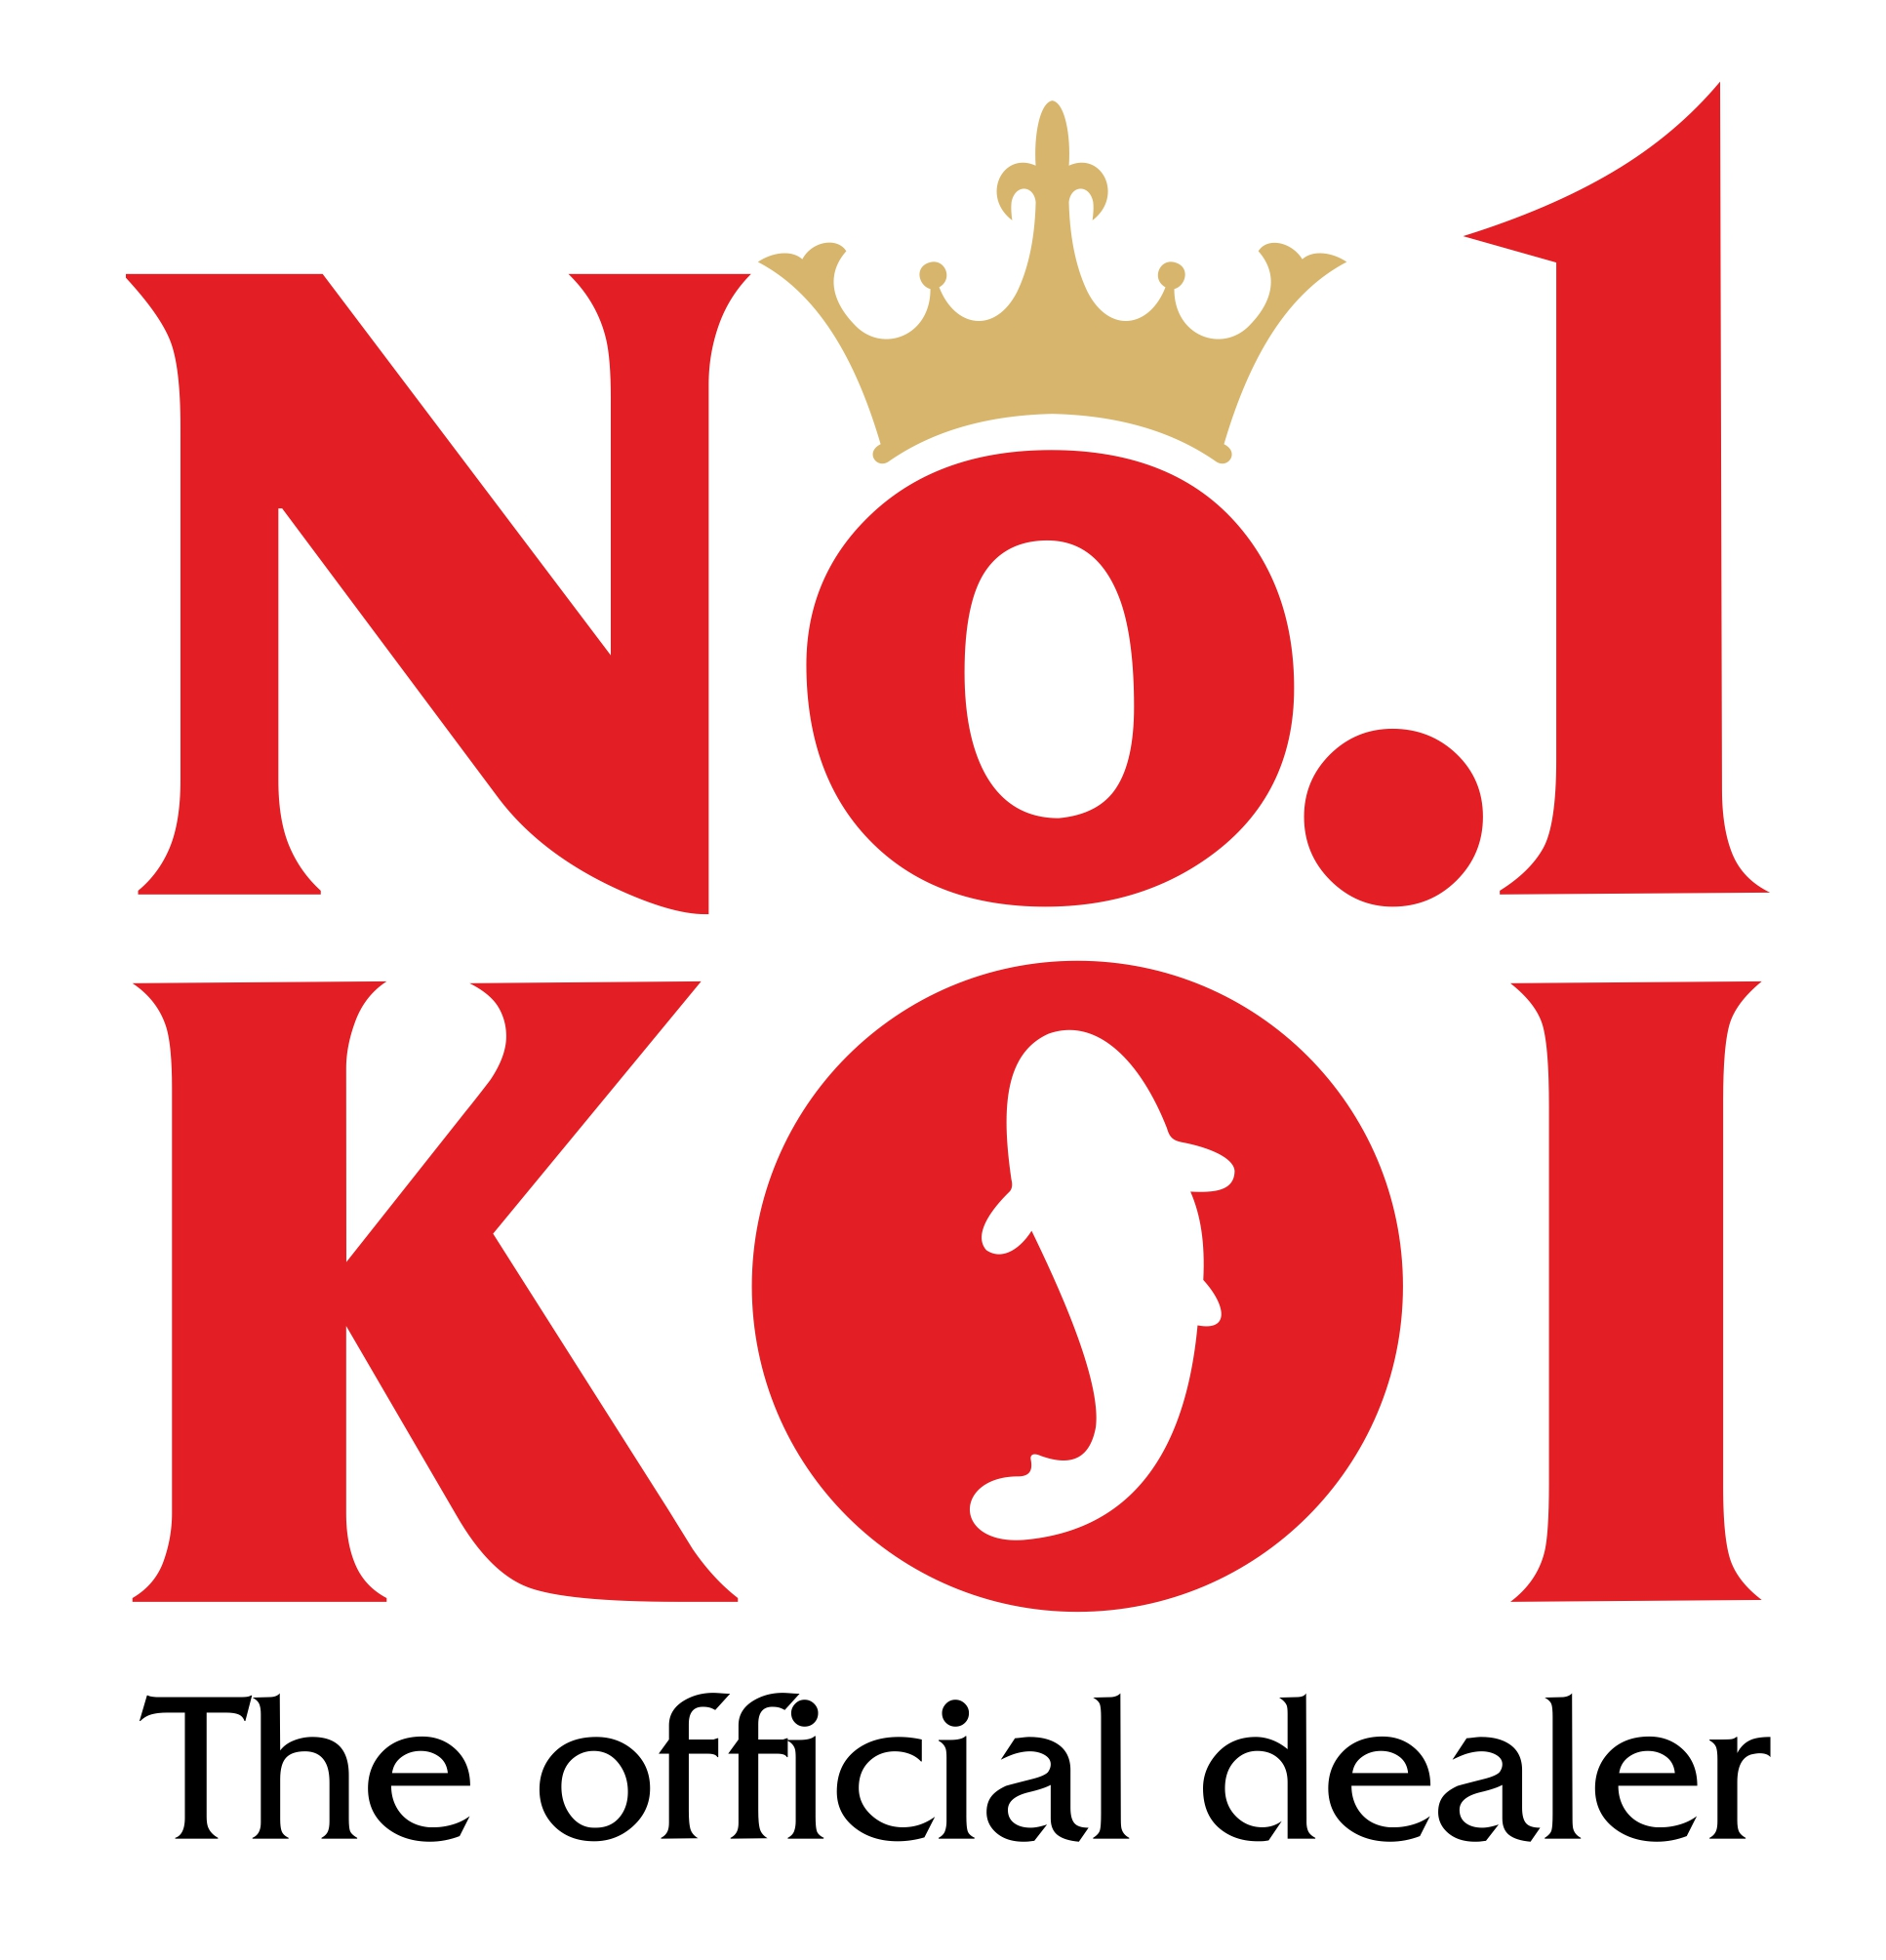 AQUATICA KOI CENTRUM is NO.1 KOI official dealer for Europe ...